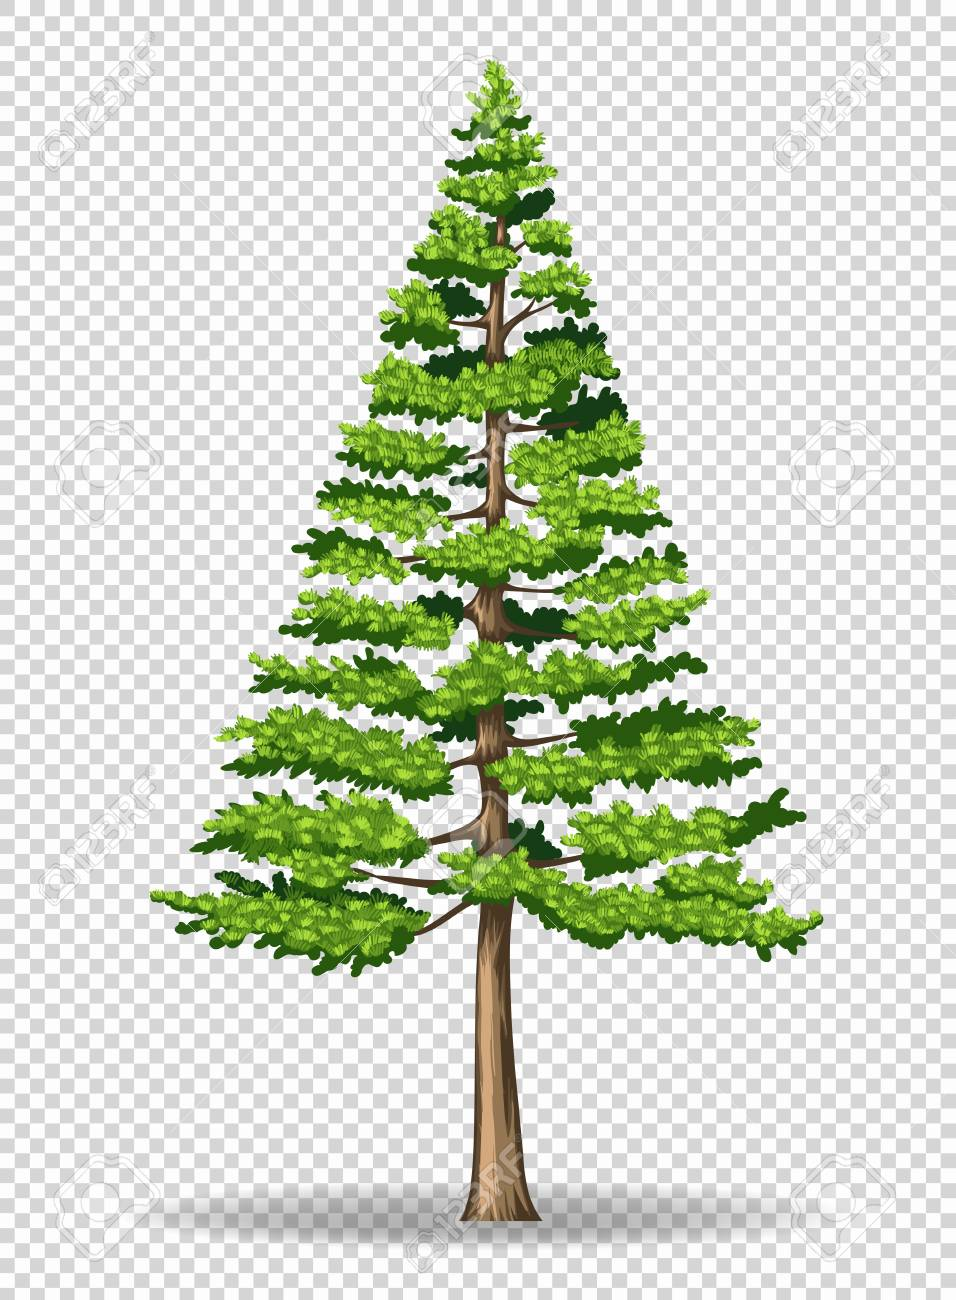 hight resolution of pine tree on transparent background illustration stock vector 78000092